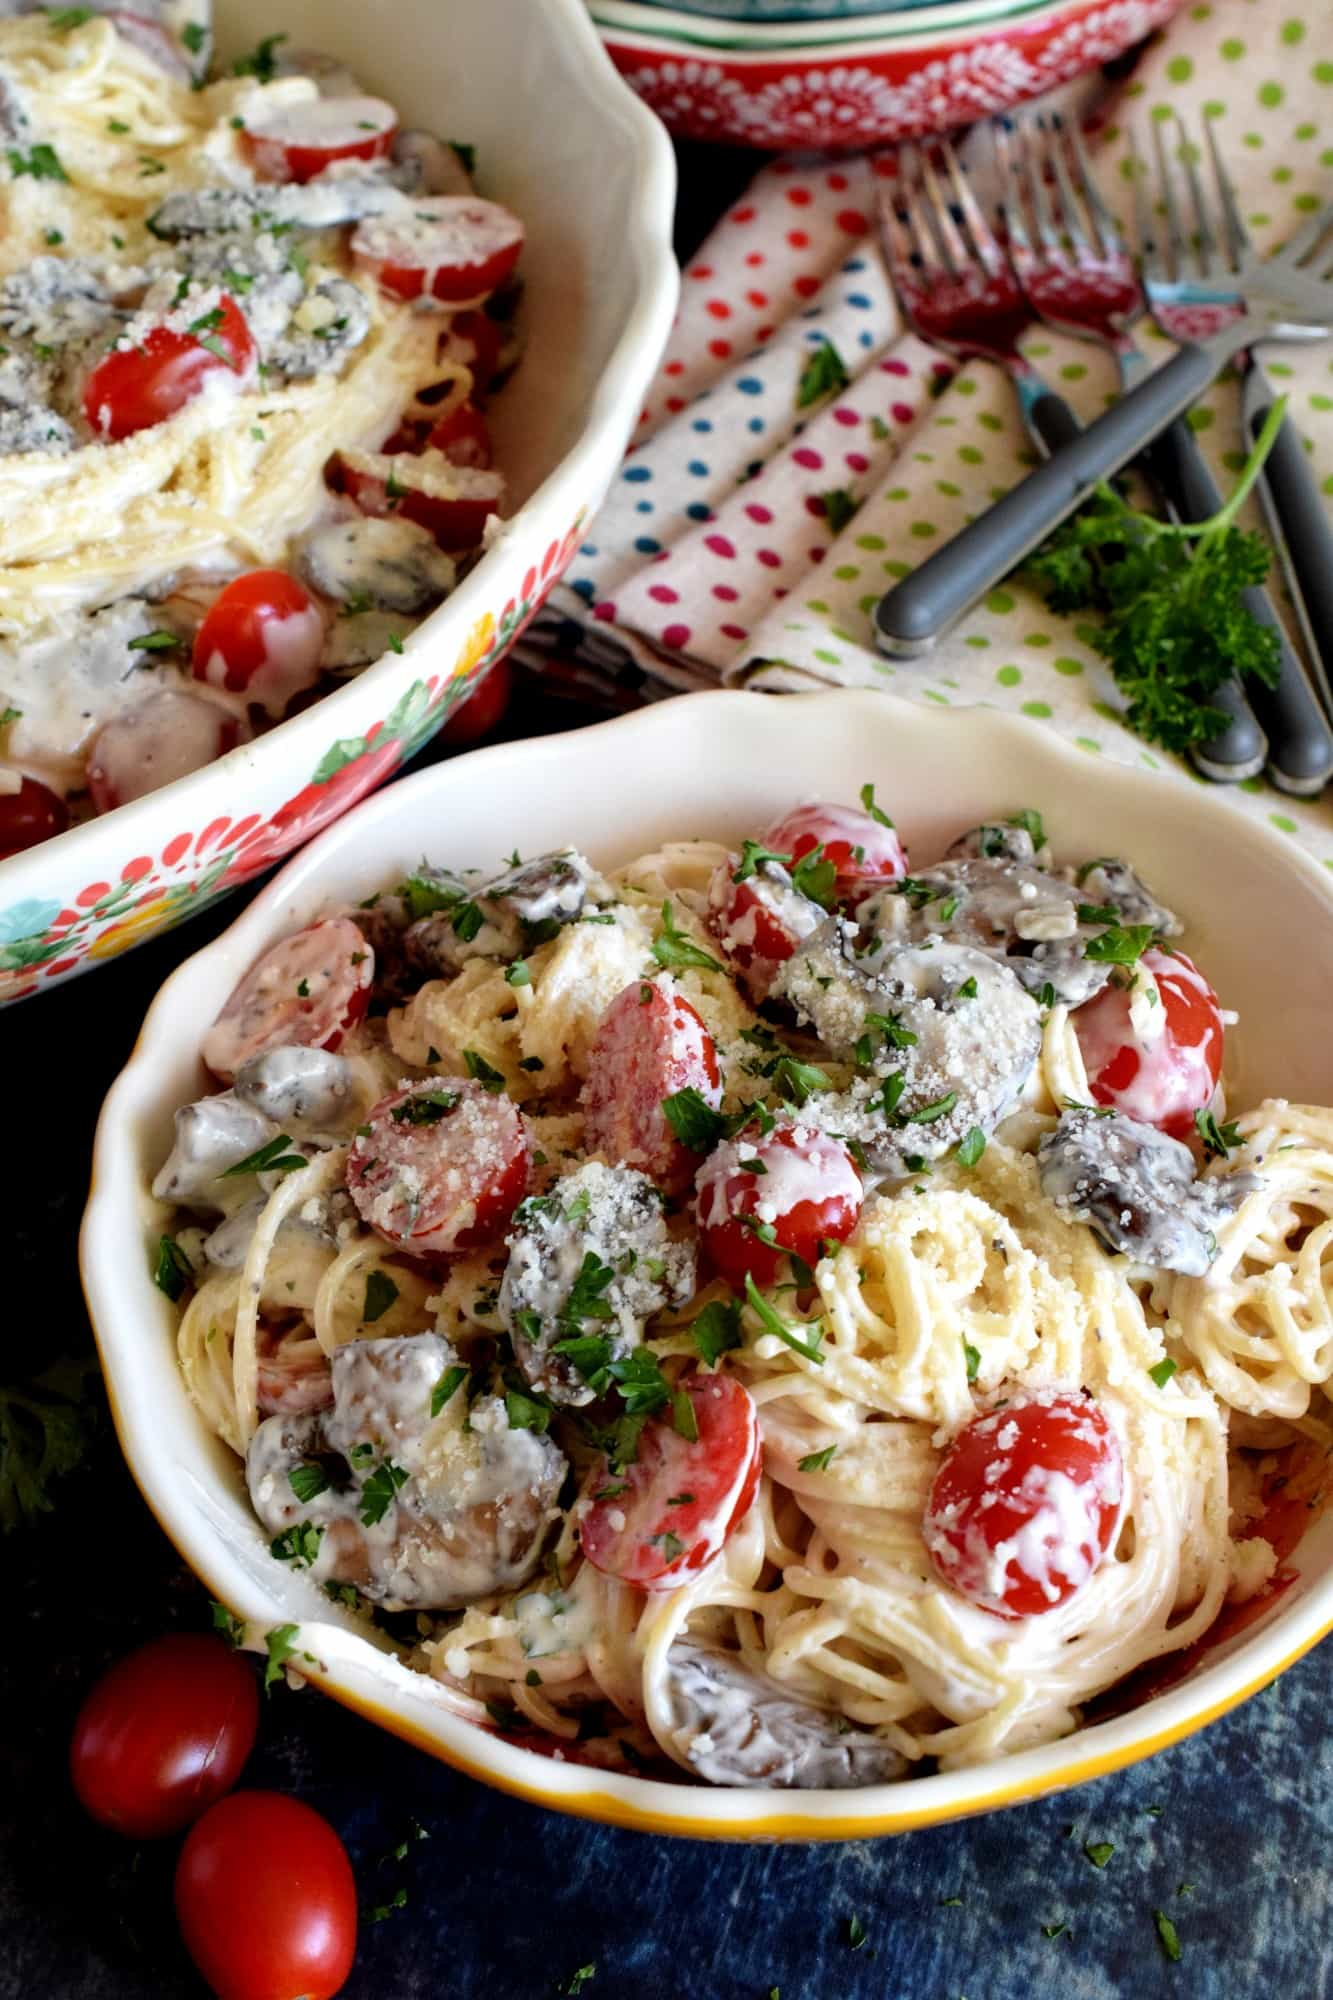 Spaghetti In Cream Cheese Sauce With Mushrooms And Tomatoes